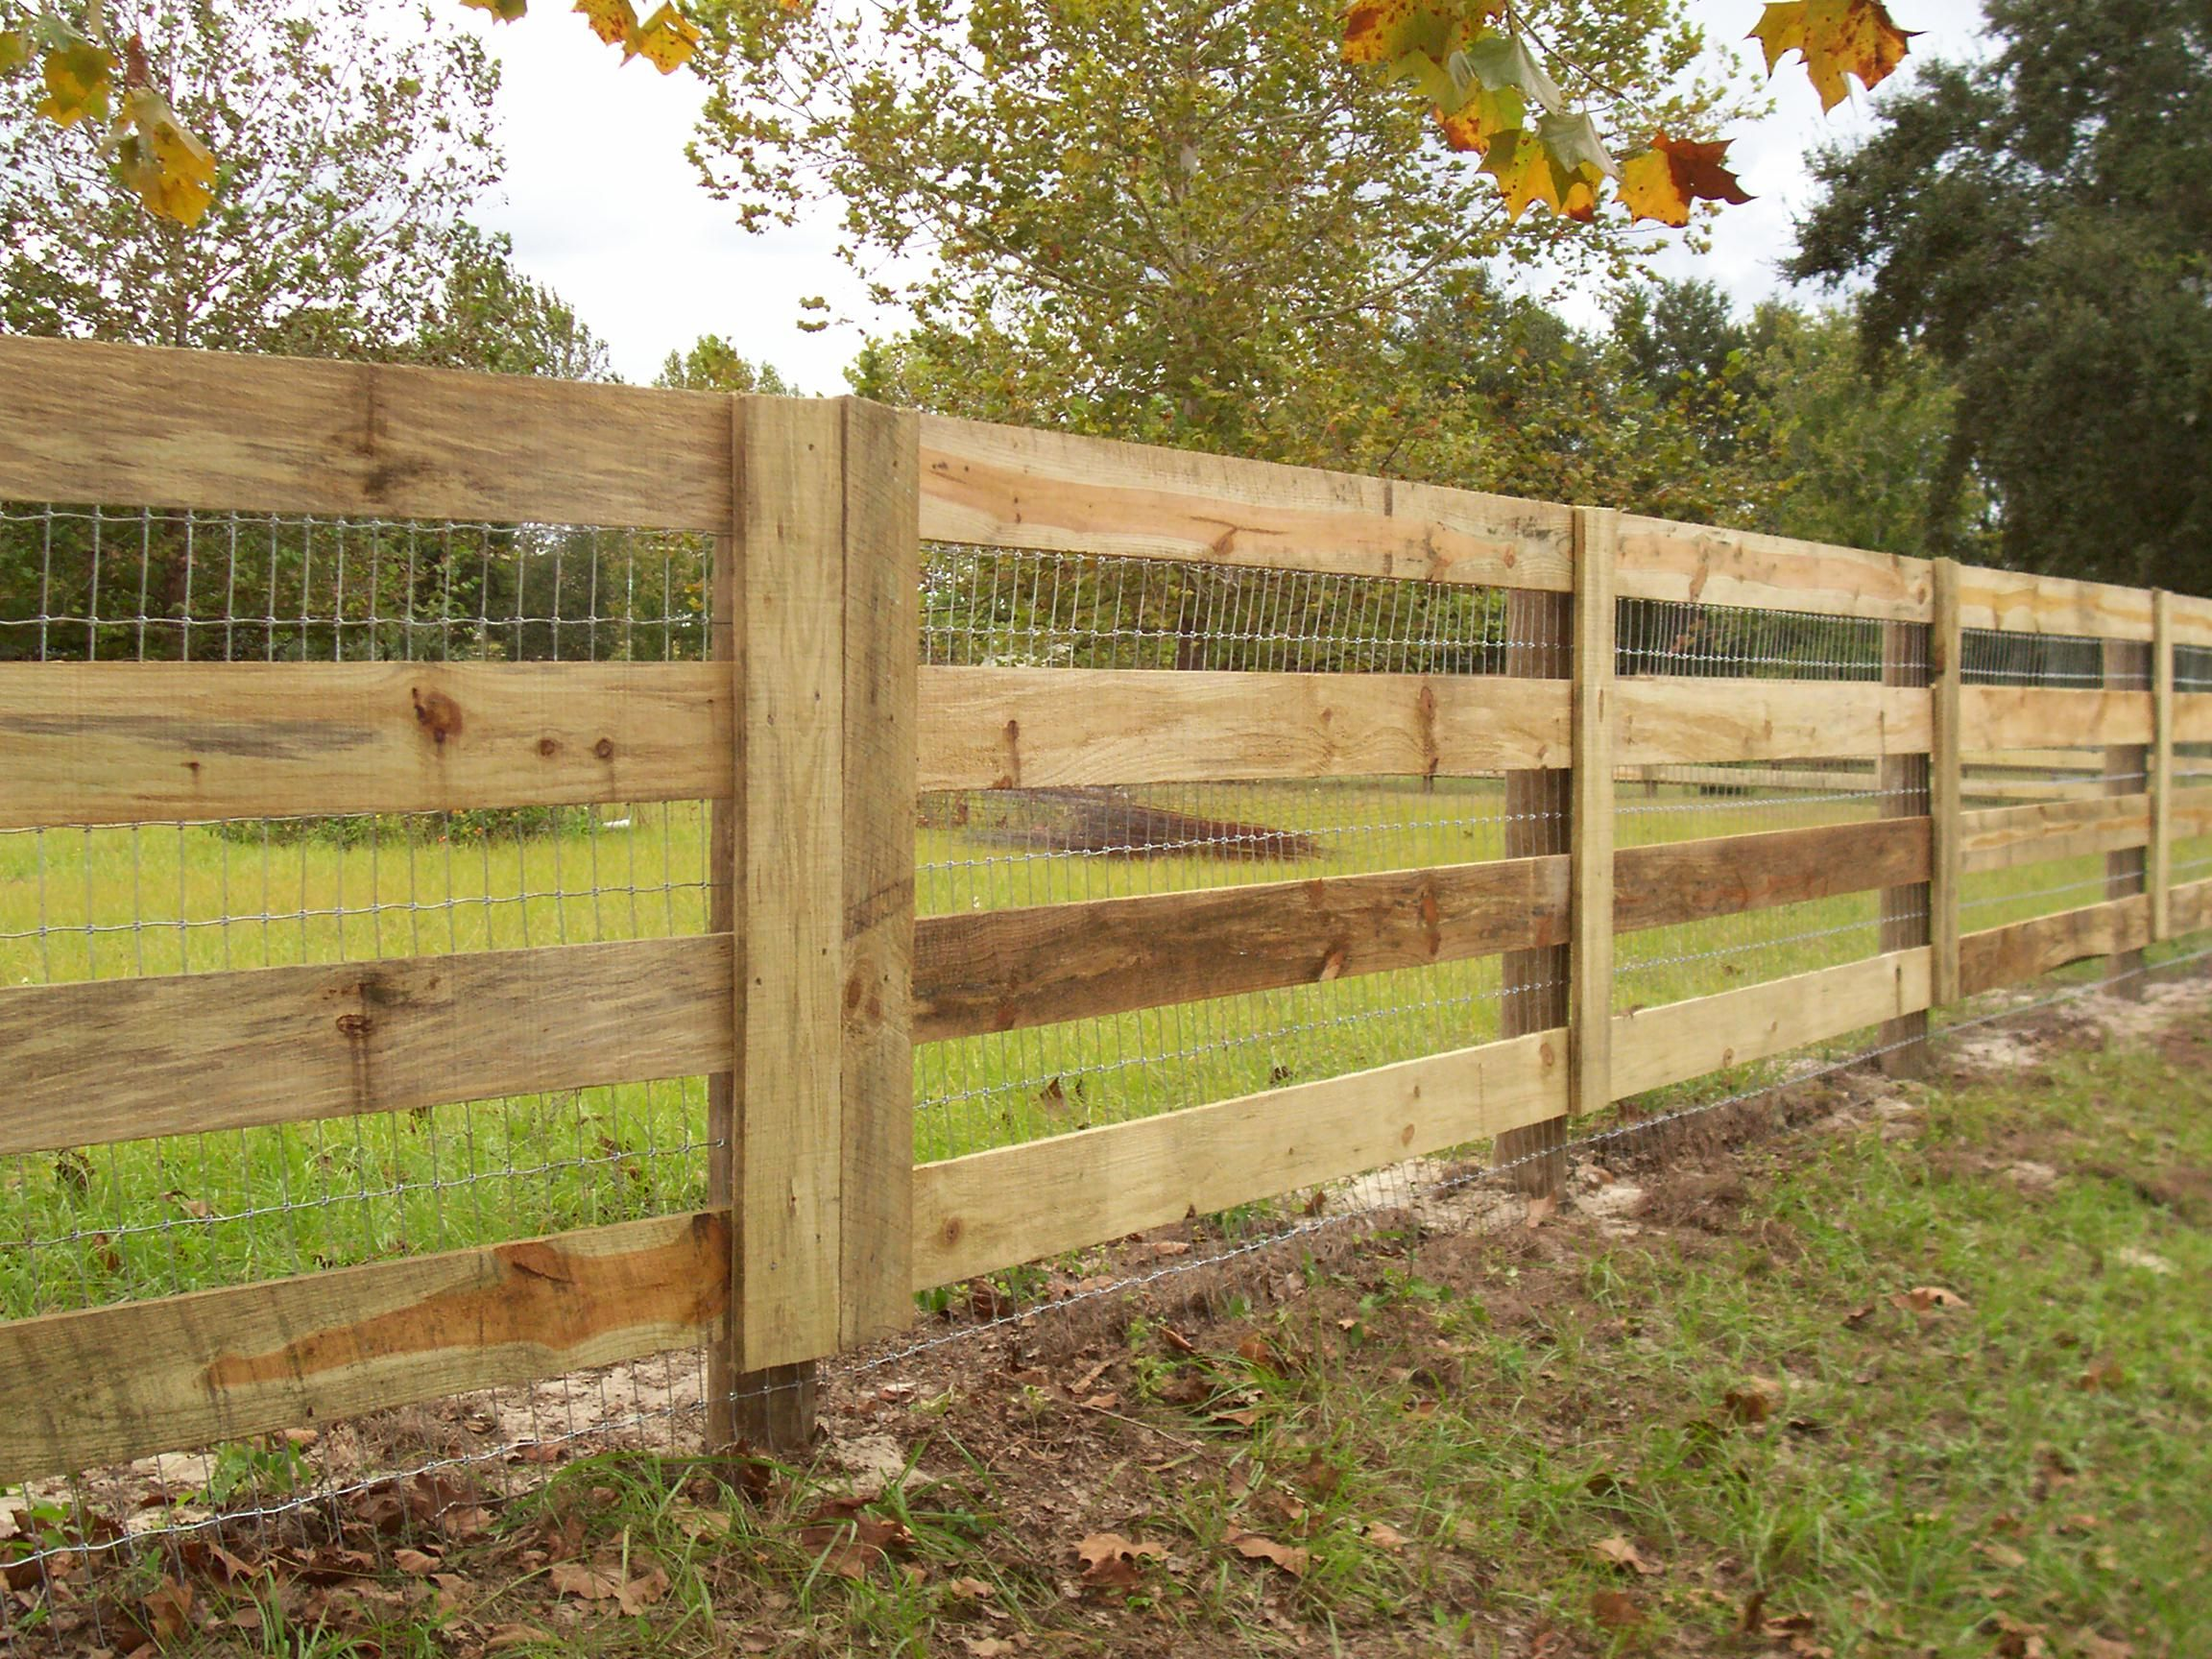 Custom Wood Horse Fence Design With Wire For Added Protection Mossy Oak Company Orlando Melbourne Fl